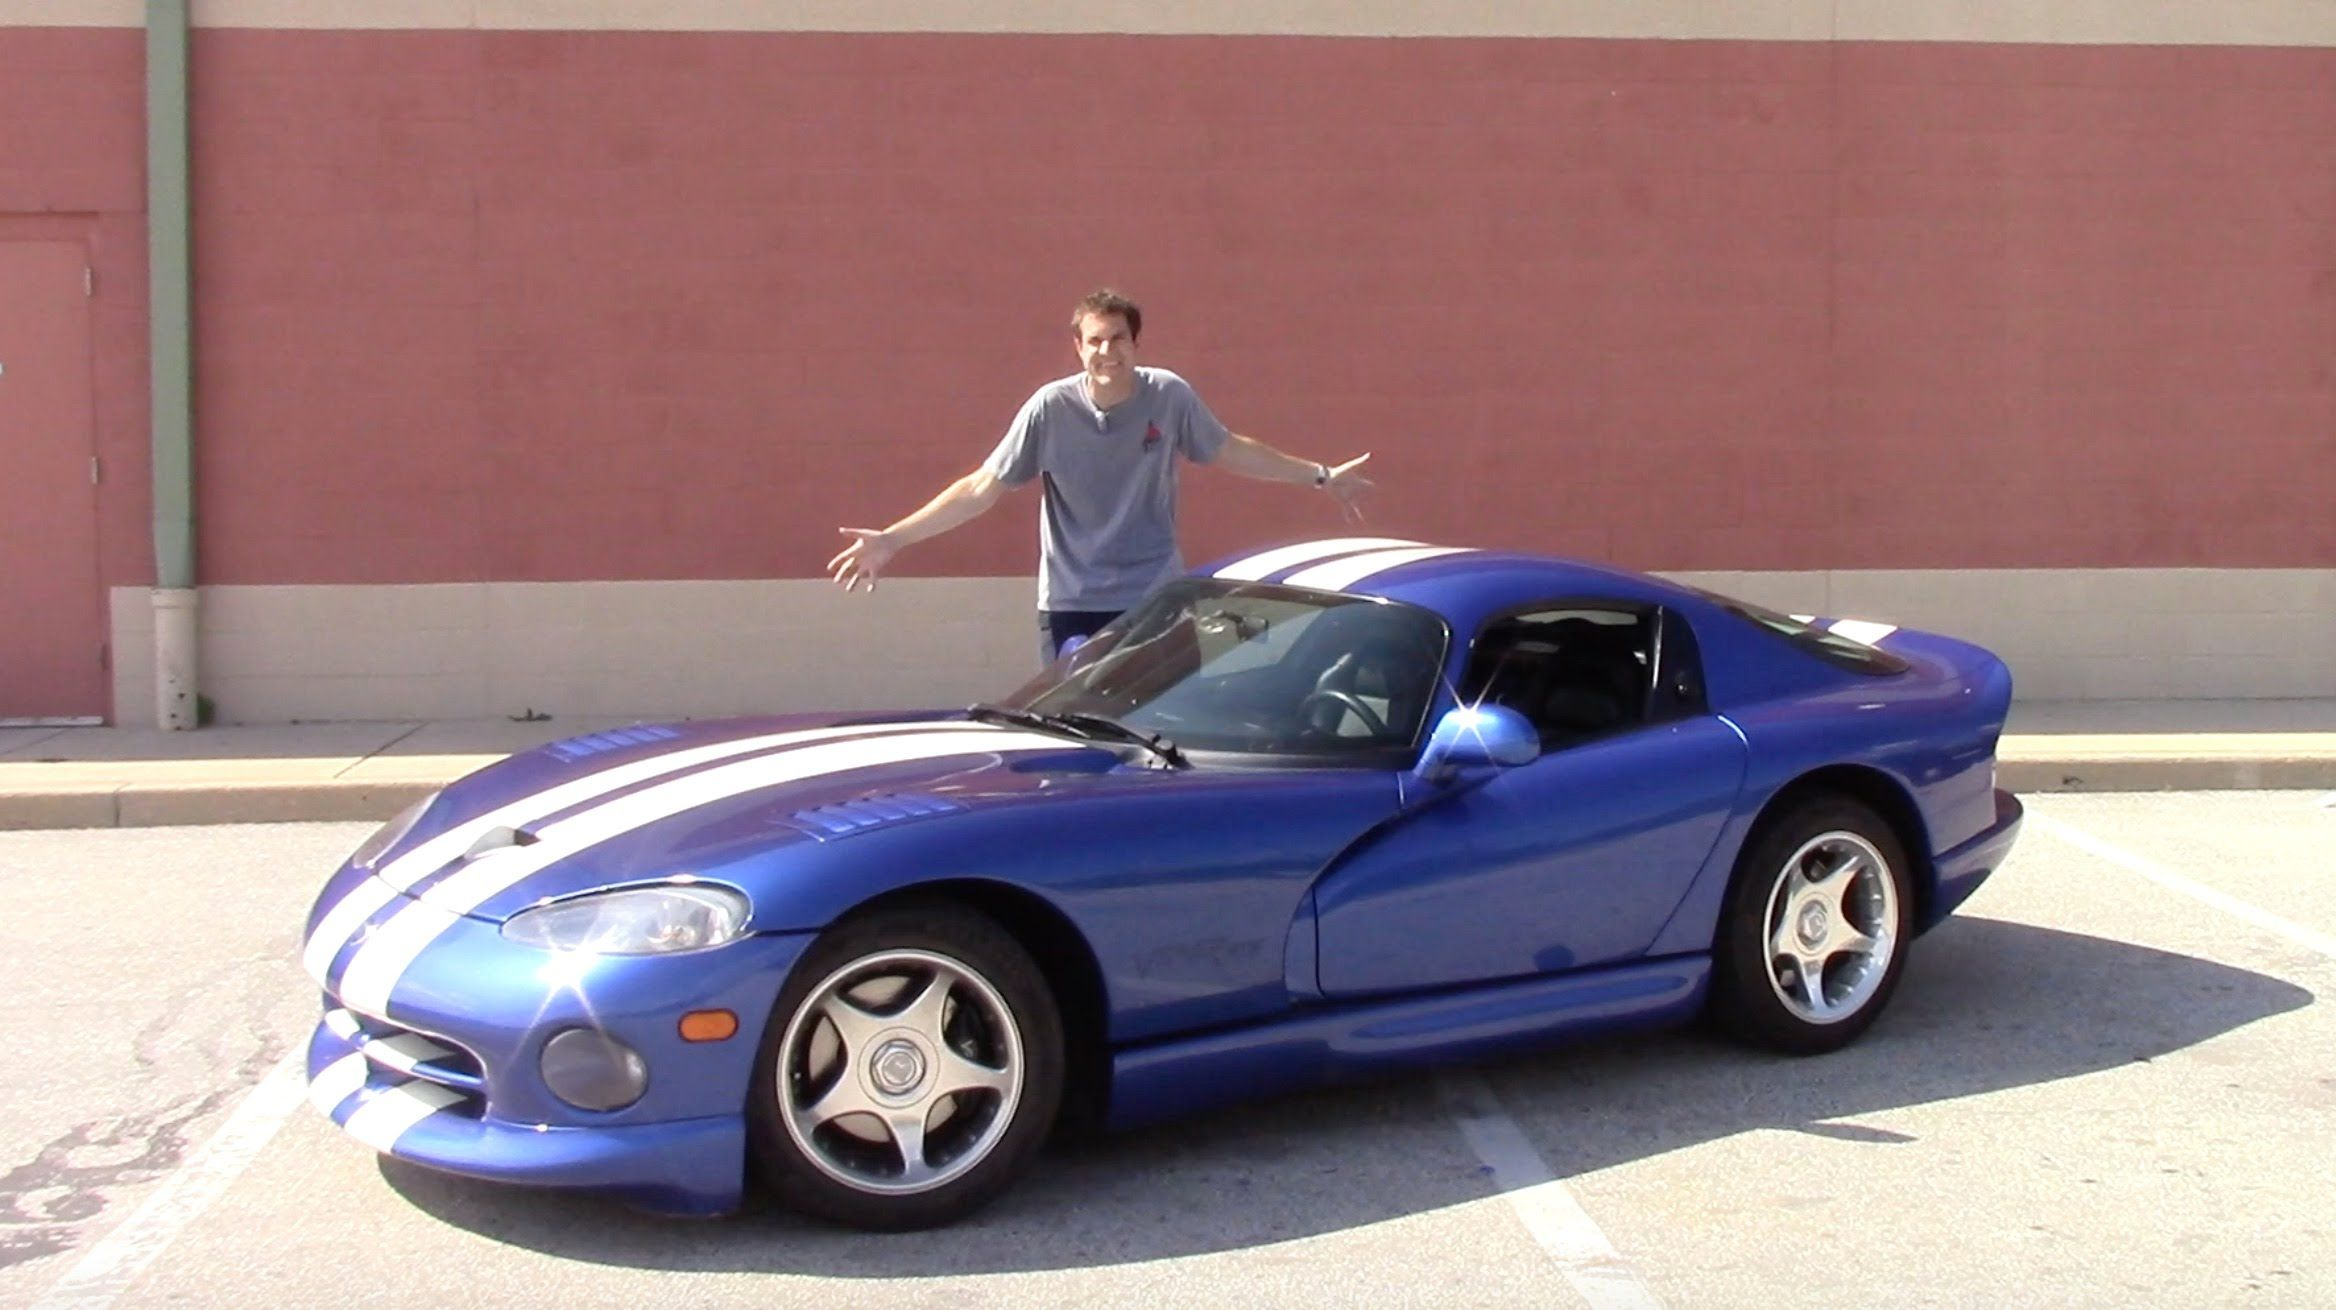 cool Car and Truck videos - I Bought a Dodge Viper And Drove It 500 ...